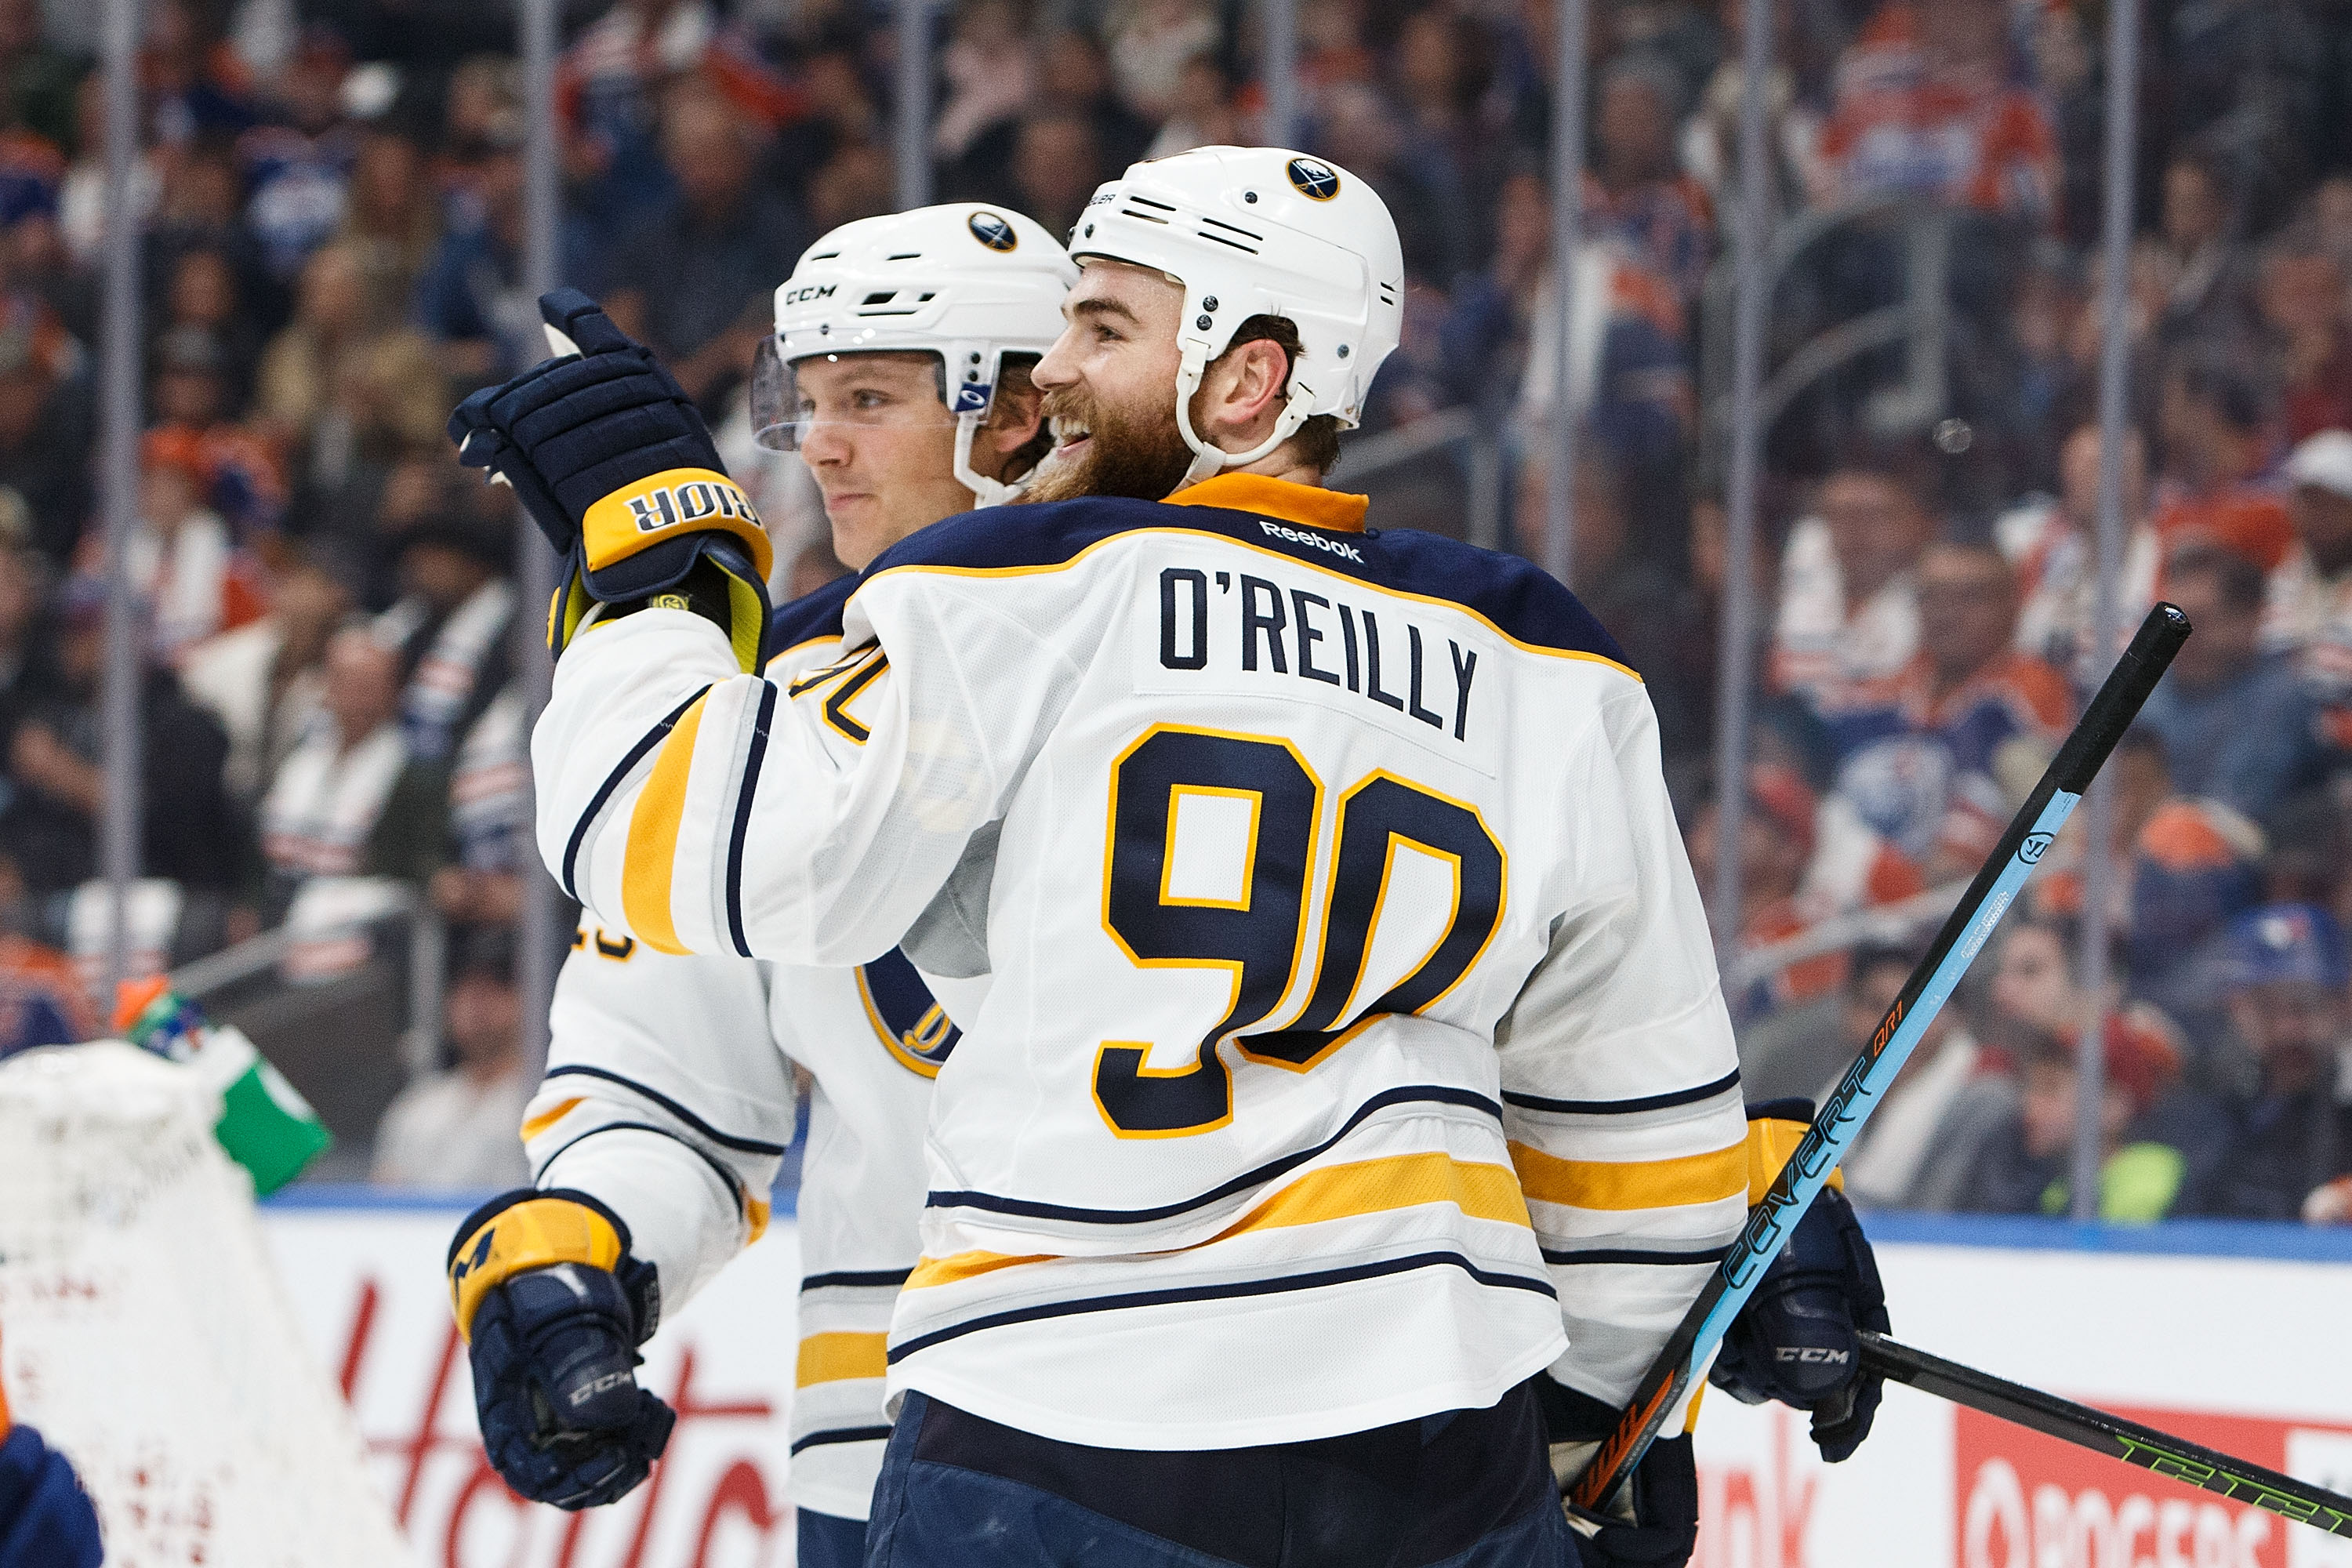 Ryan O'Reilly celebrates his first-period goal with Sam Reinhart (Getty Images).